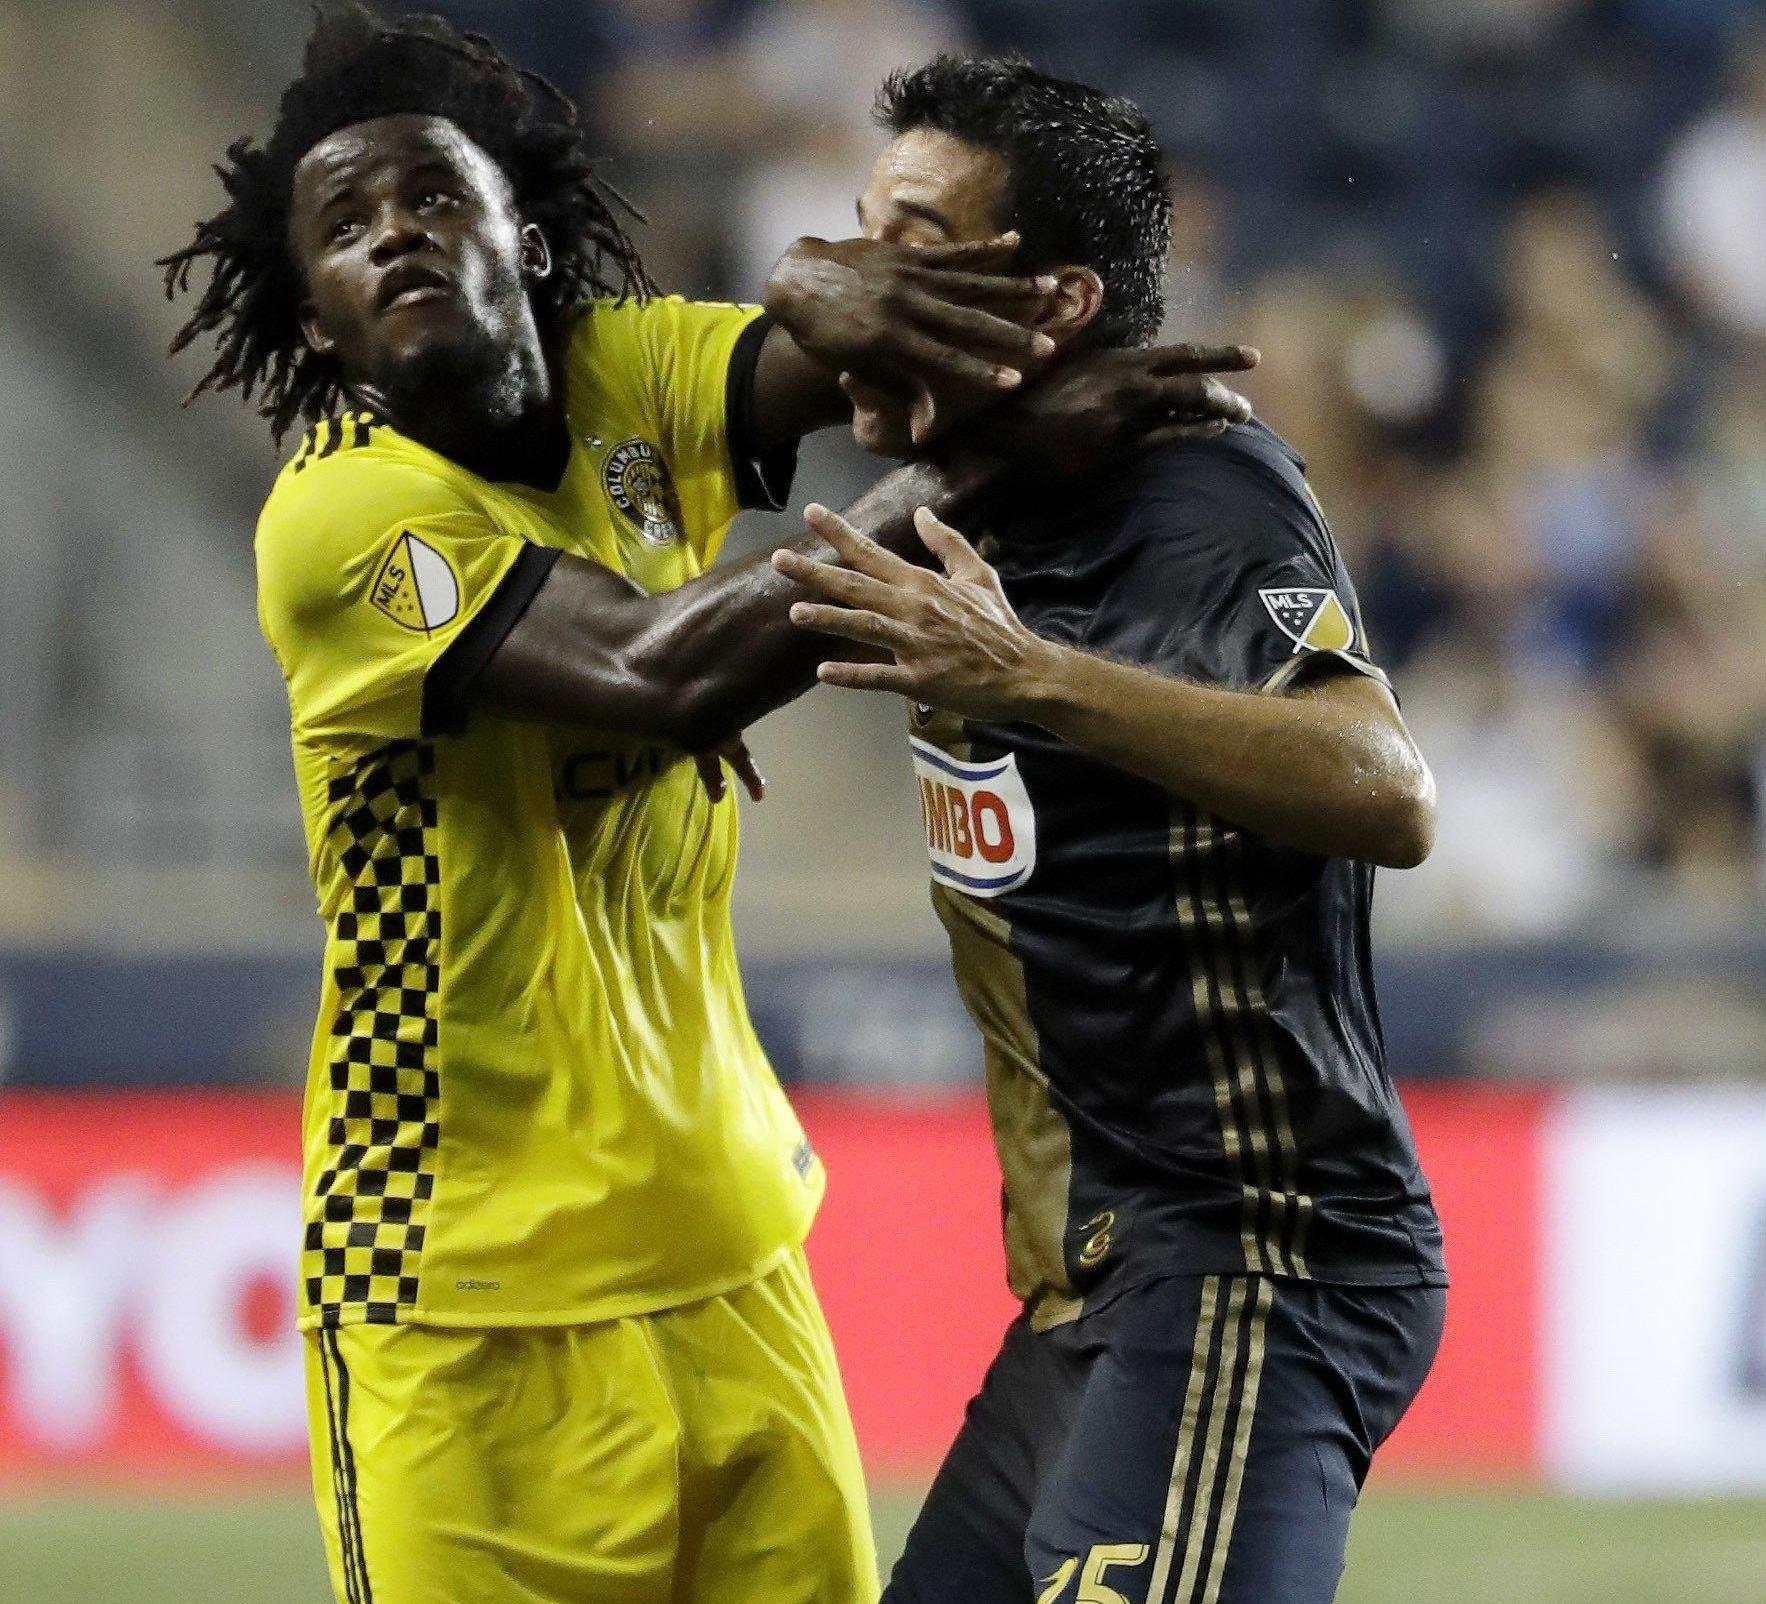 Columbus Crew lose appeal to overturn Lalas Abubakar's red card